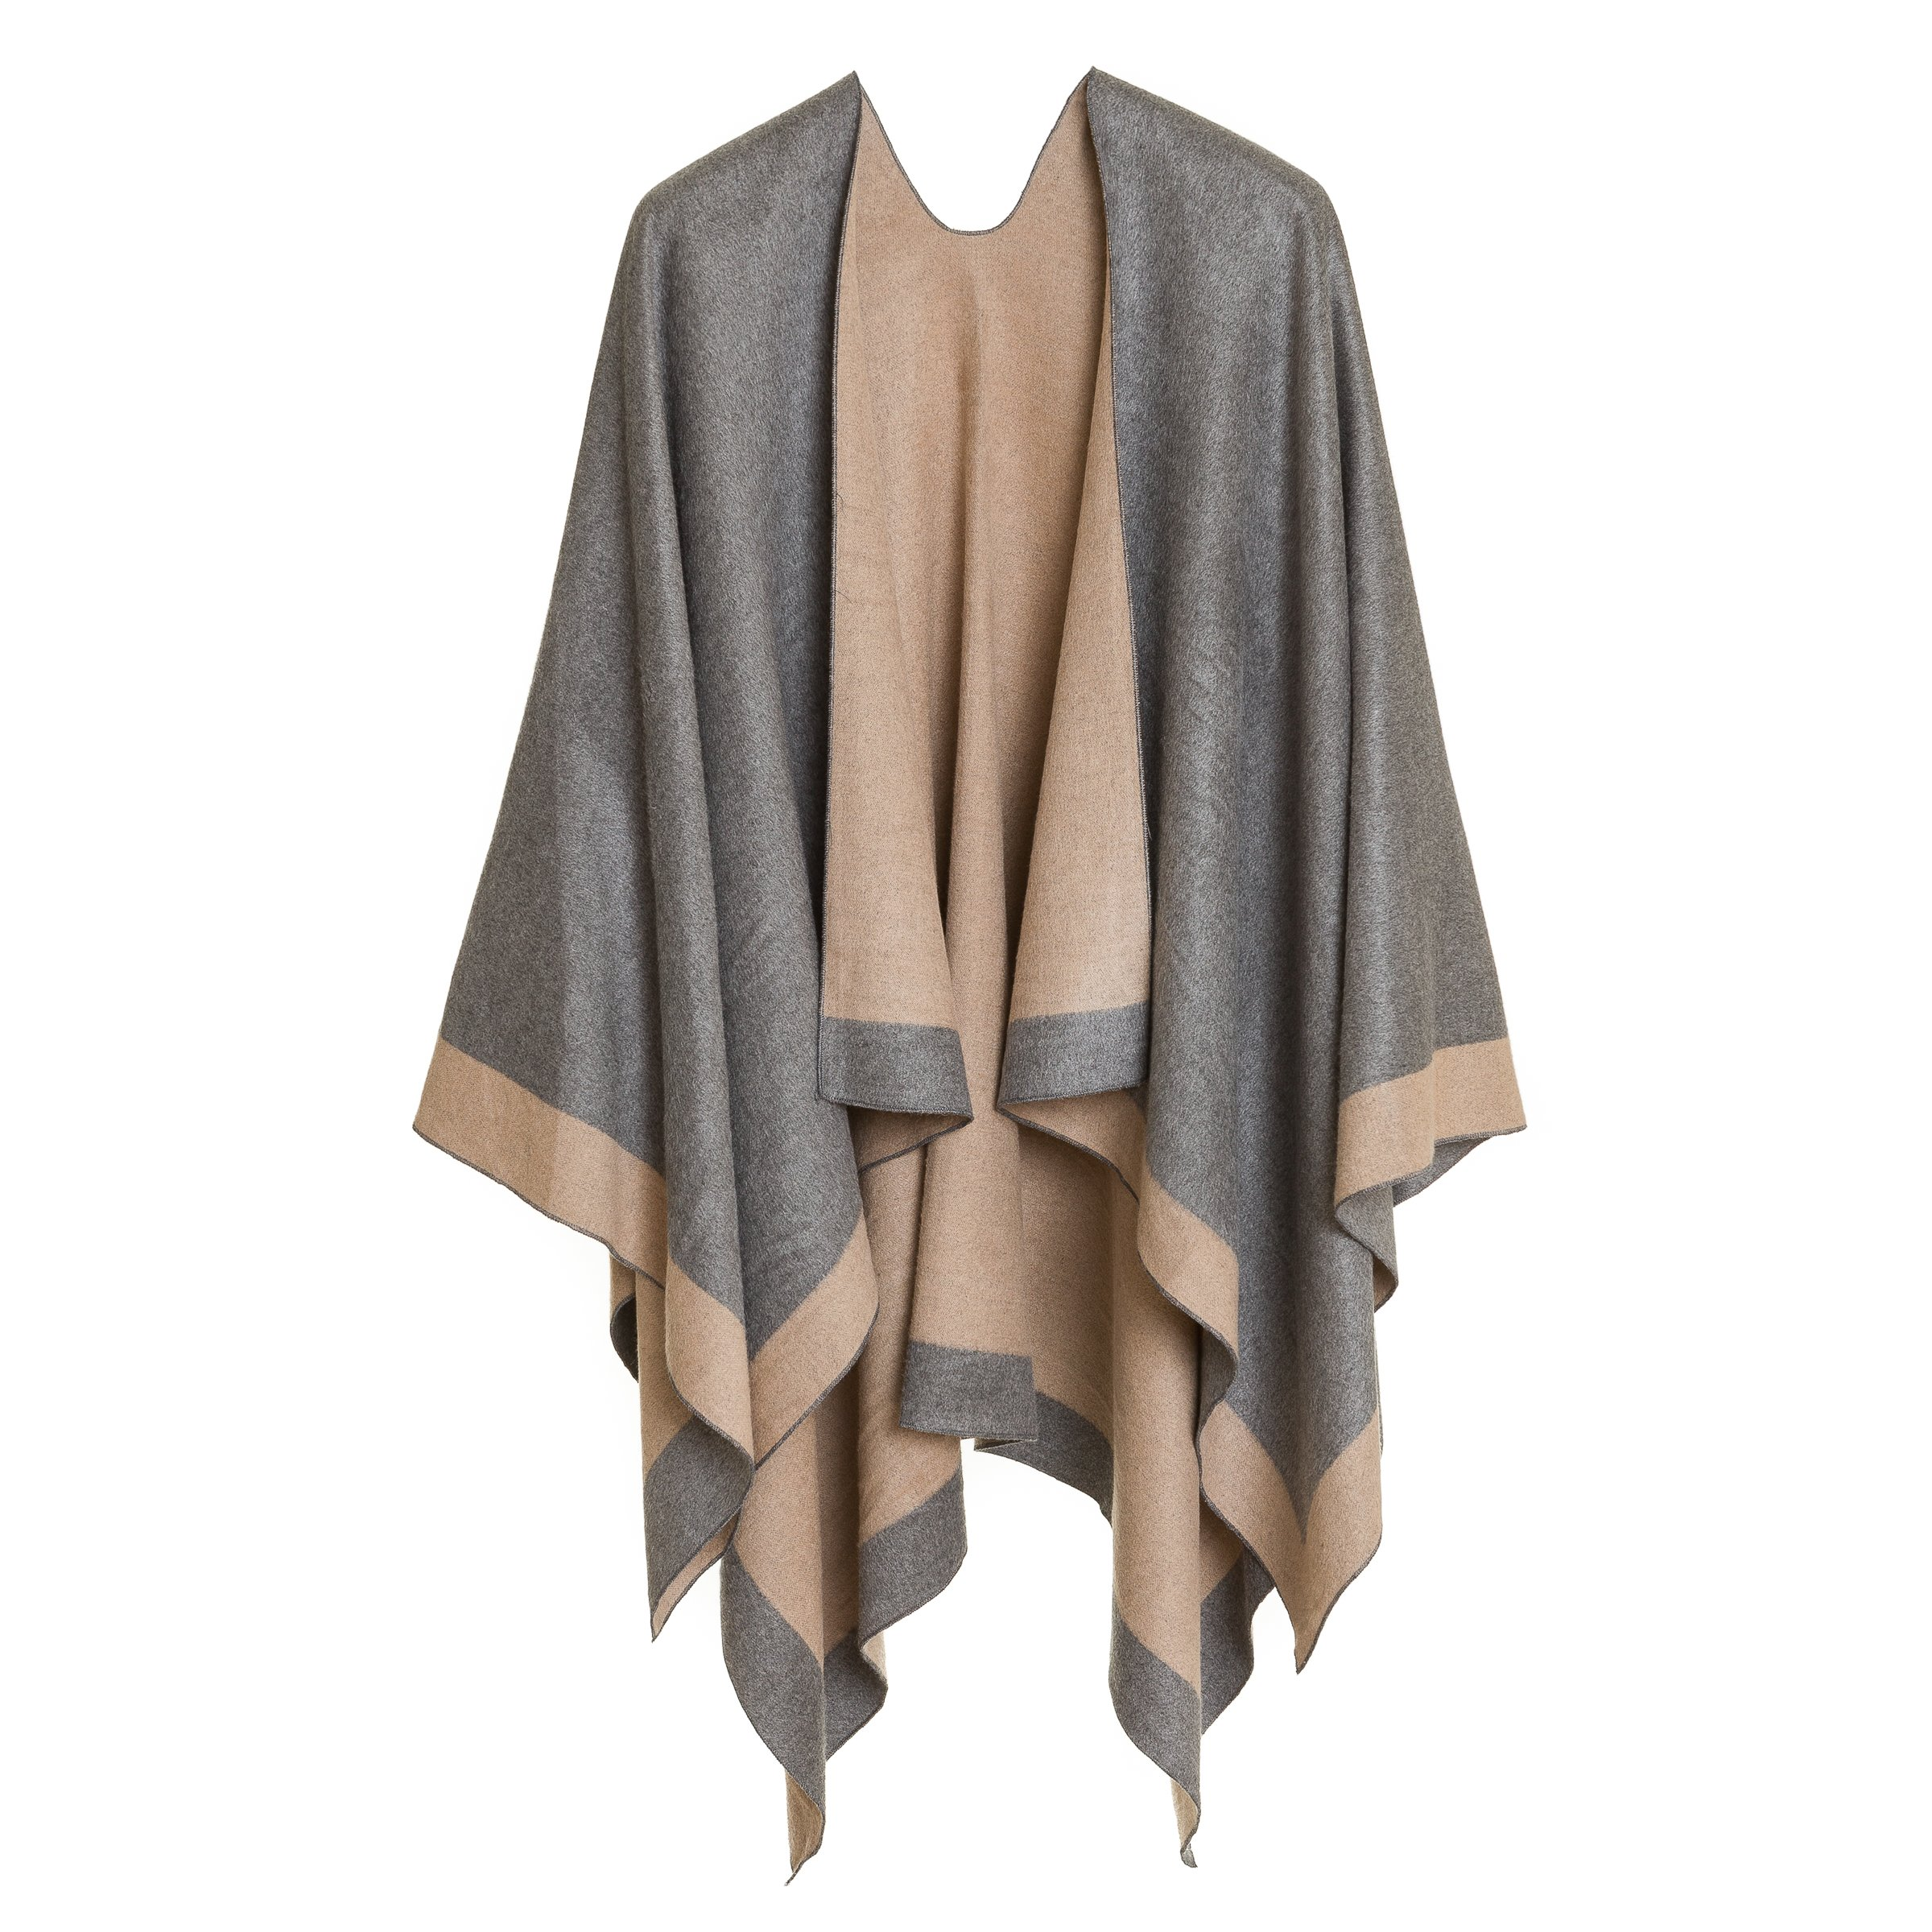 Cardigan Poncho Cape: Women Elegant Cardigan Shawl Wrap Sweater for Fall Winter (Light Gray Beige) by MELIFLUOS DESIGNED IN SPAIN